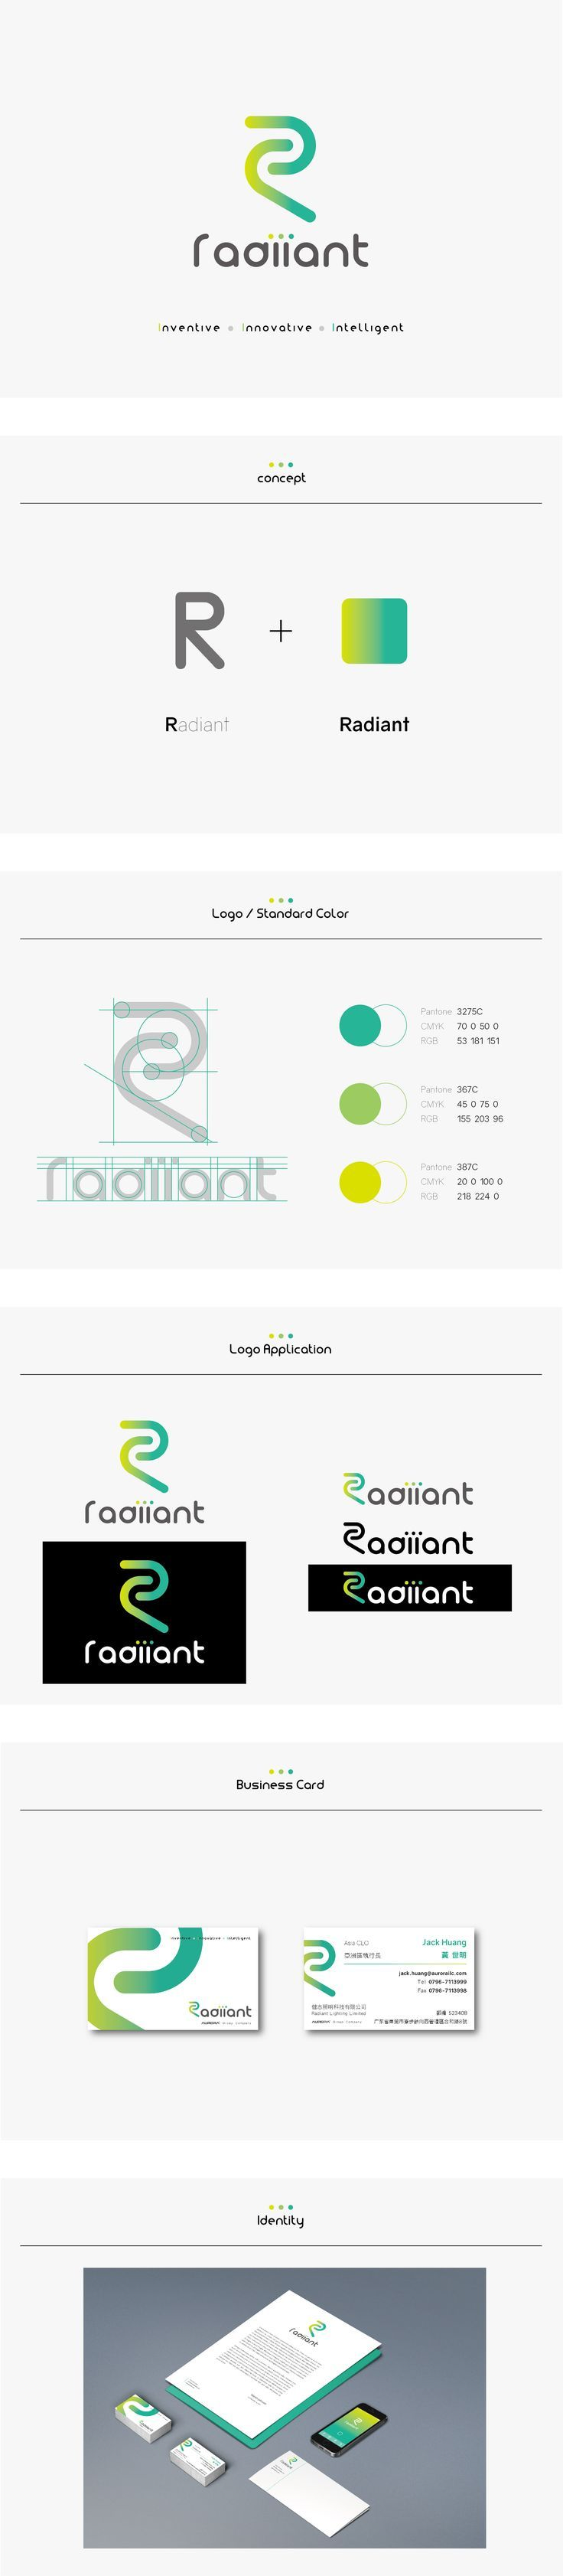 Radiiant – Logo / Identity Design -Proposal 1